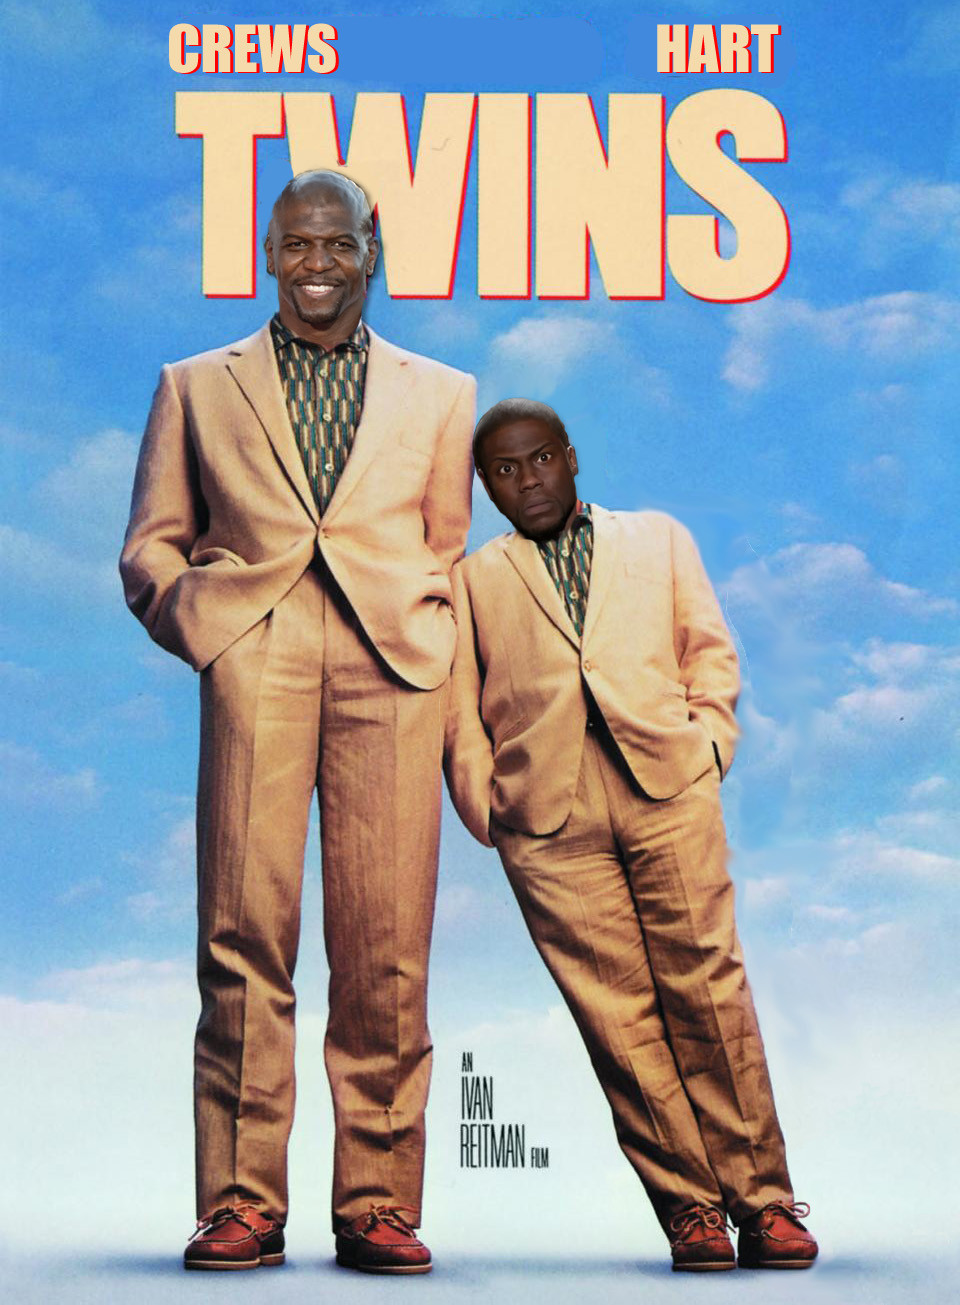 Hart Crews - Twins.jpg